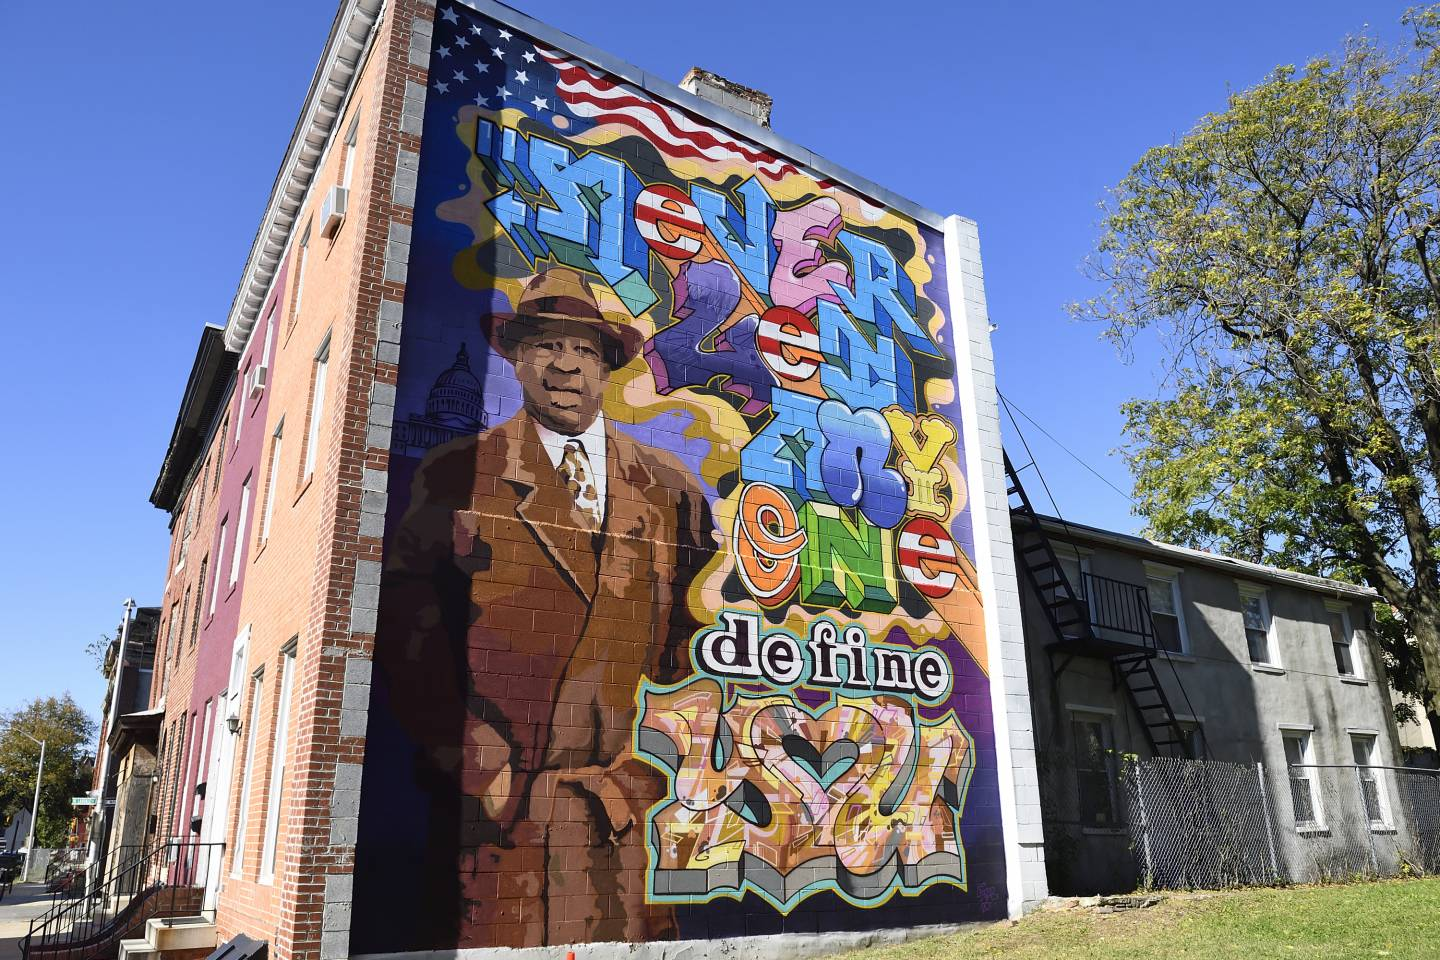 Mural on the side of a row home depicts U.S. Rep. Elijah E. Cummings